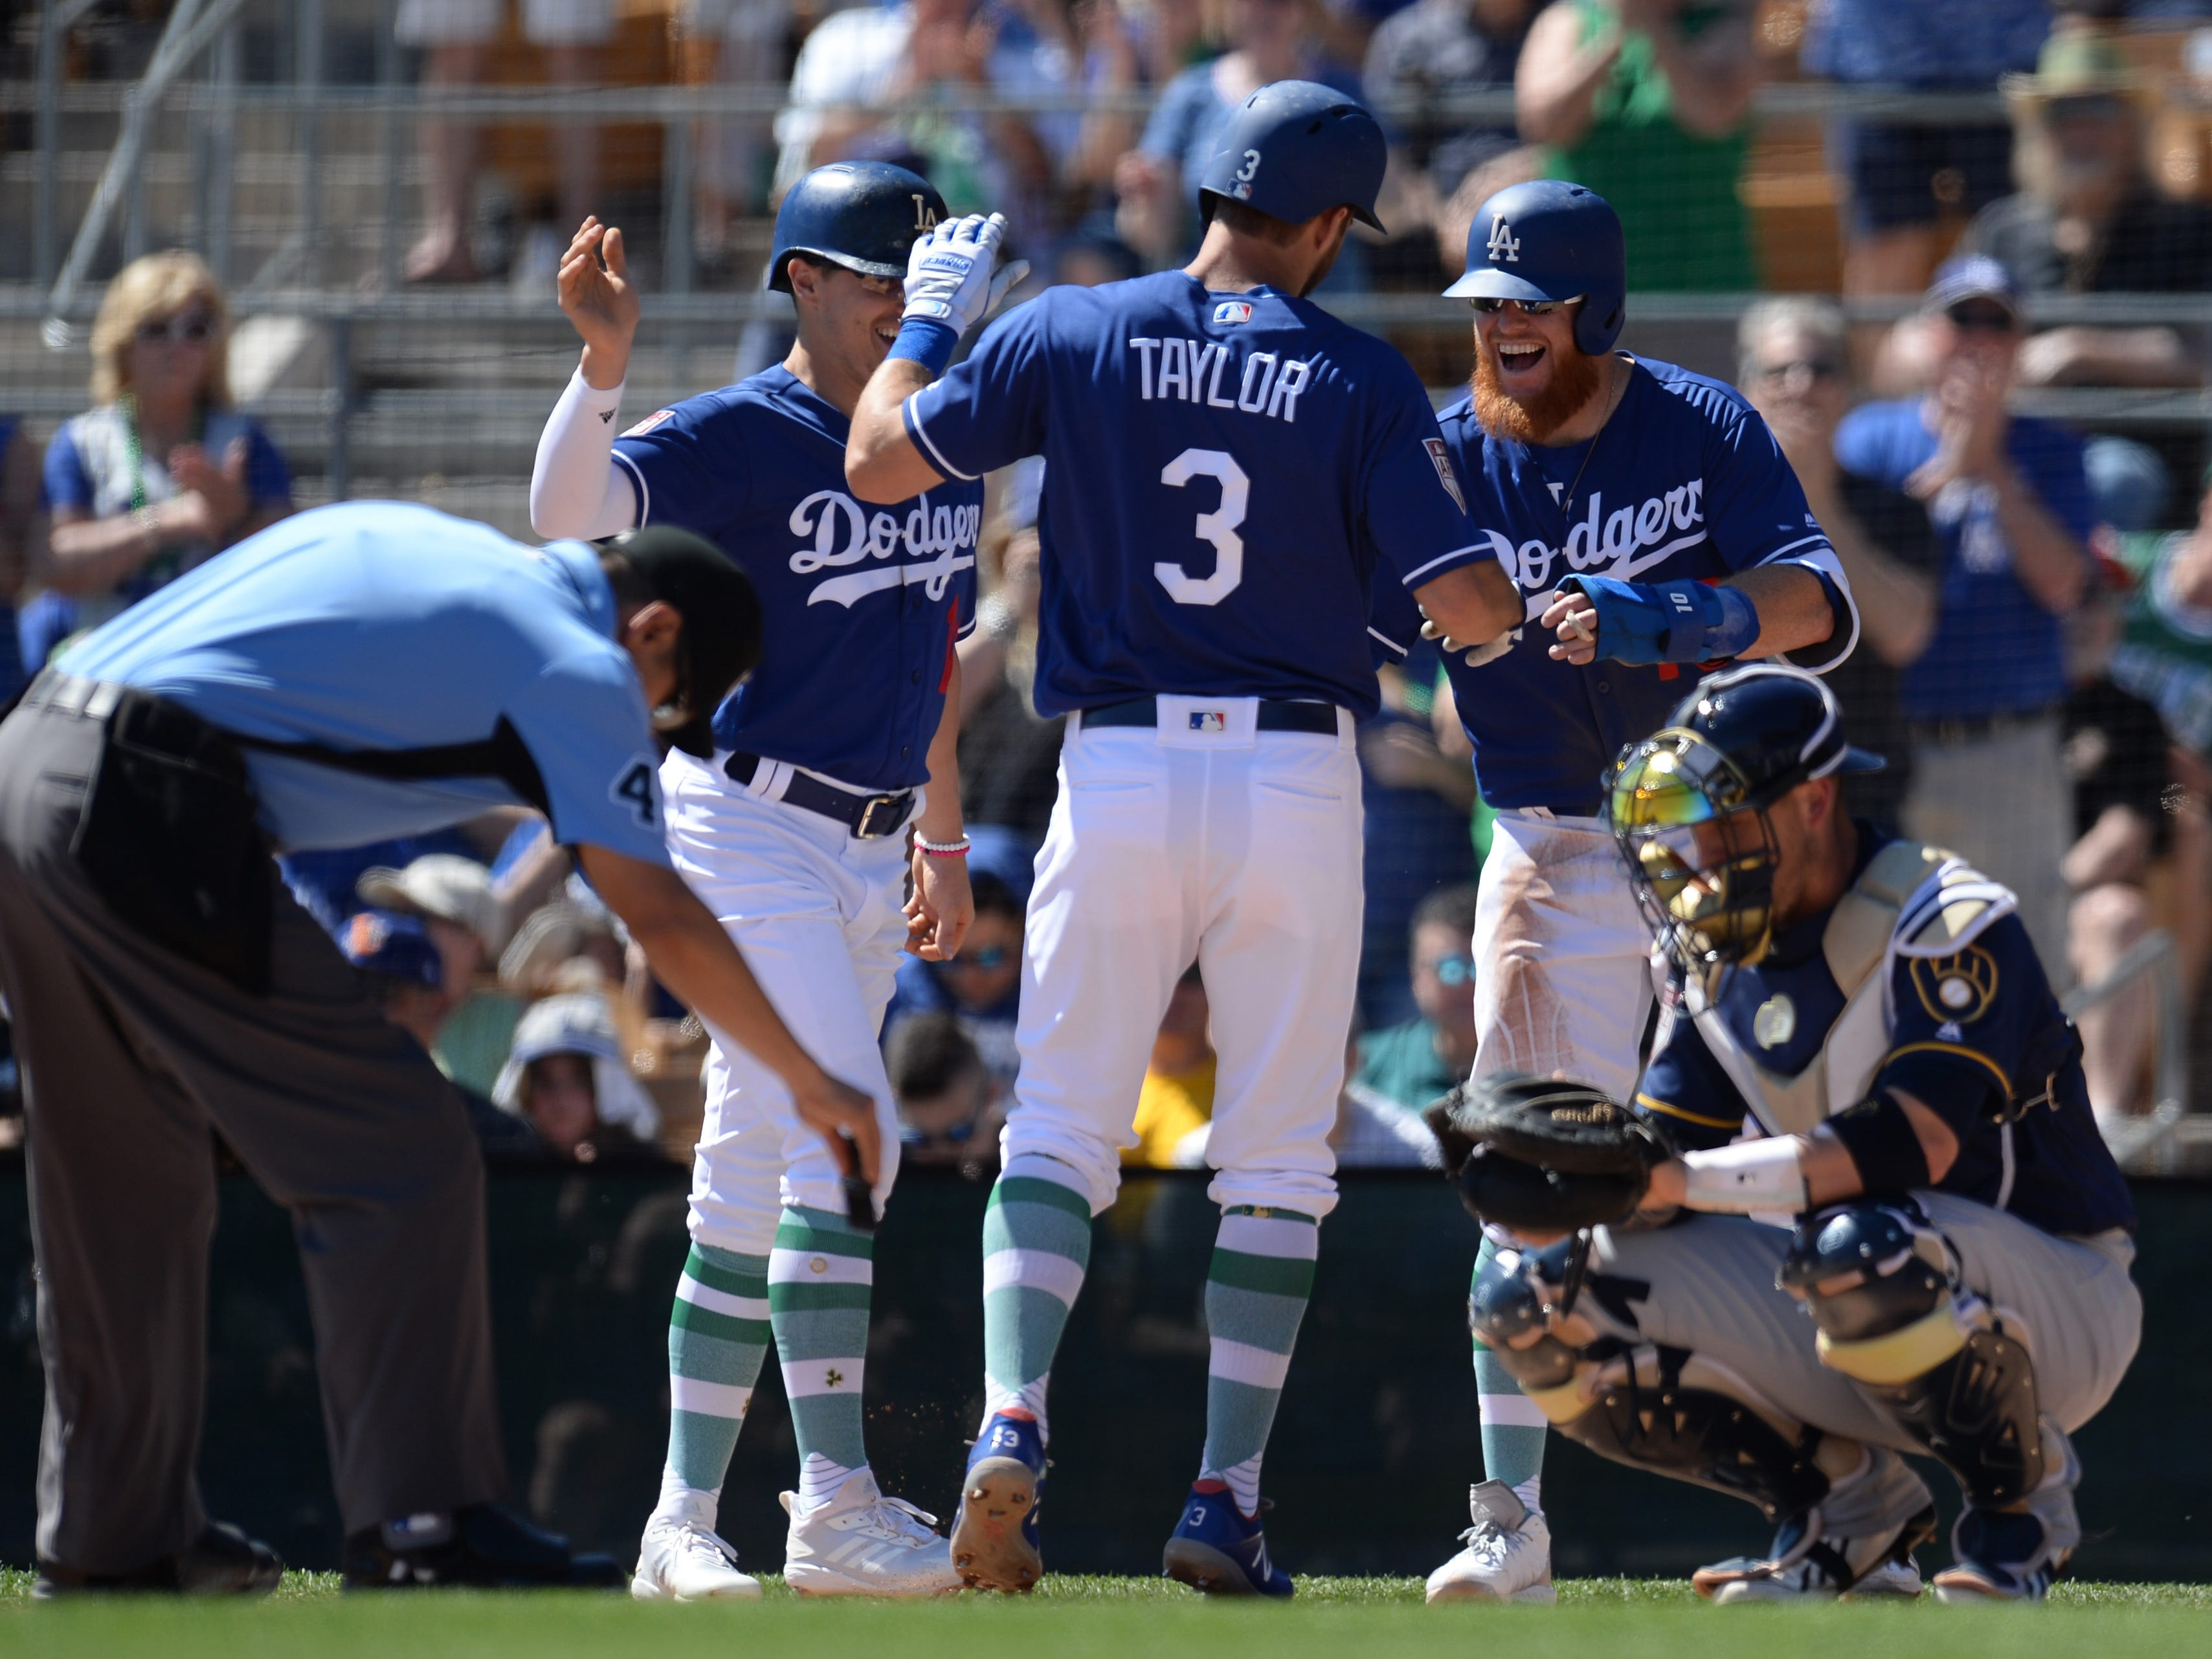 Chris Taylor of the Dodgers is greeted teammates Enrique Hernandez (left) and Justin Turner after he belted a three-run homer off Brewers starter Zack Davies in the first inning.